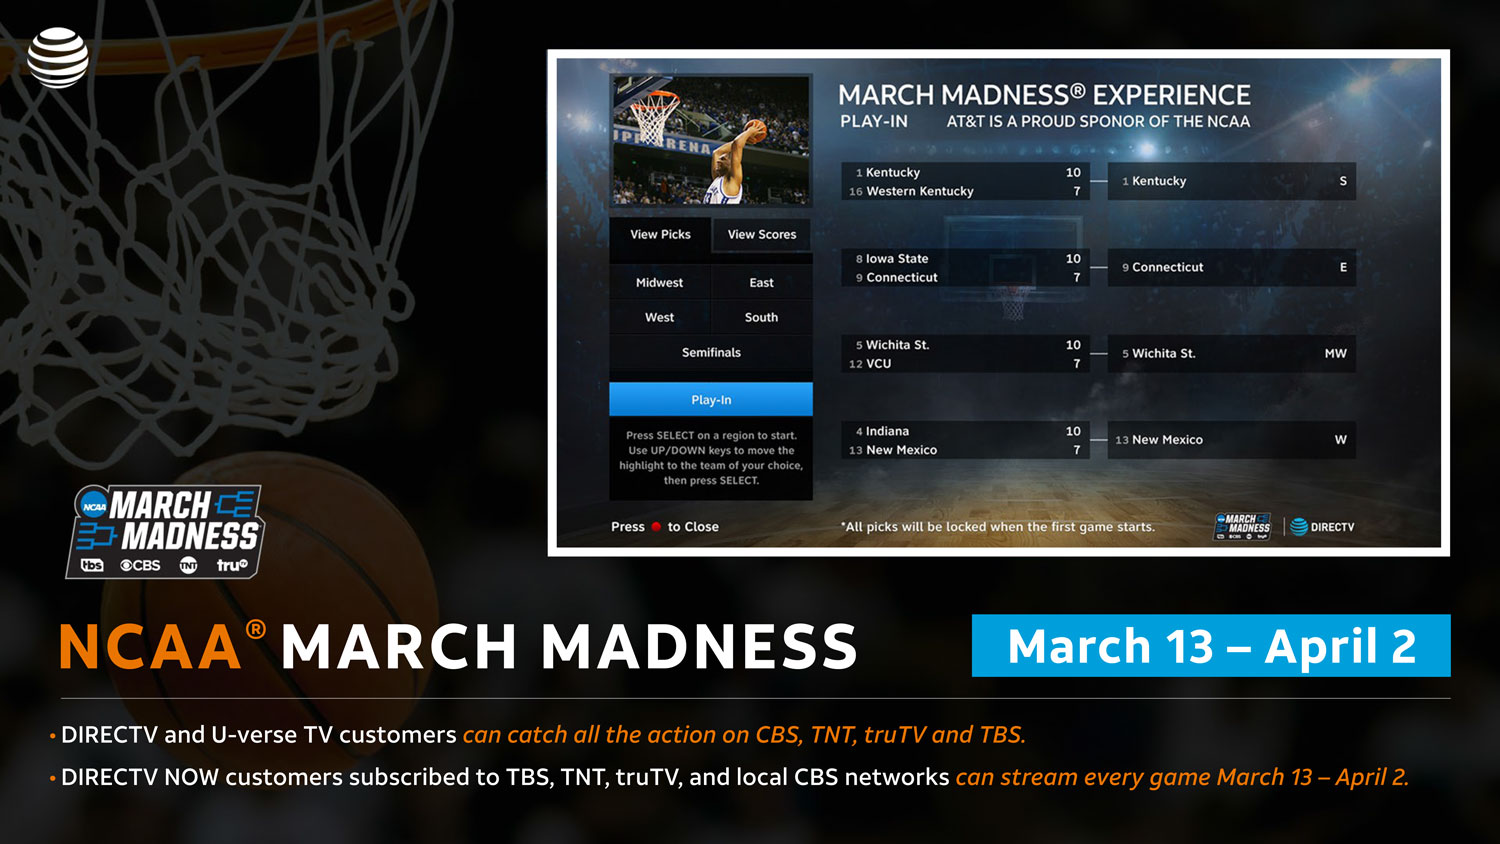 marchmadness_template-3.jpg